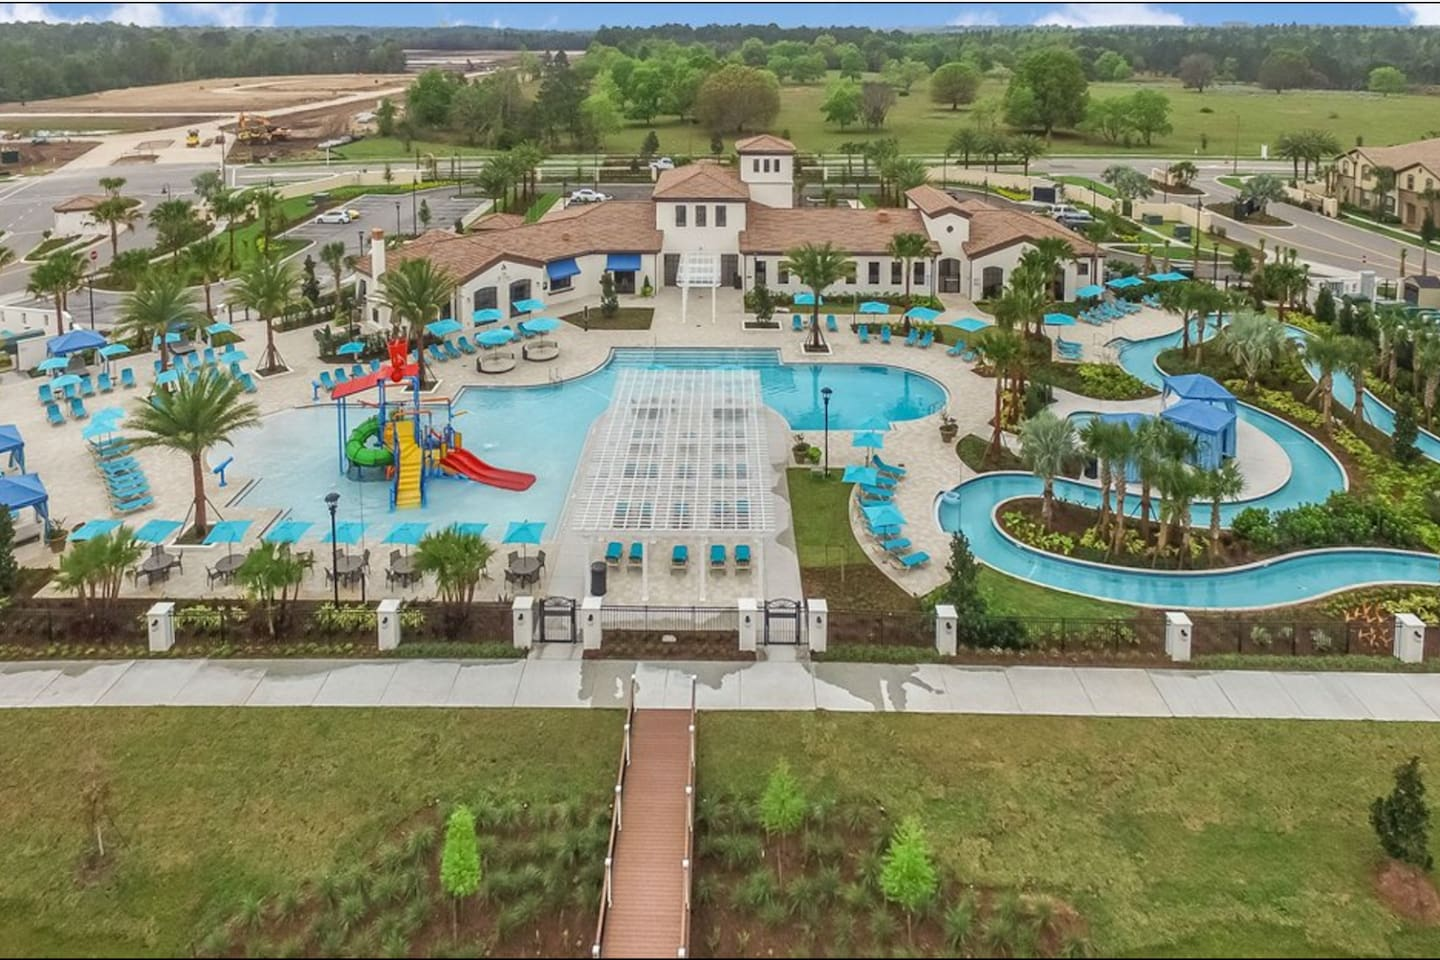 Fantastic resort with water park, heated pool, restaurant, bar, and recreational areas